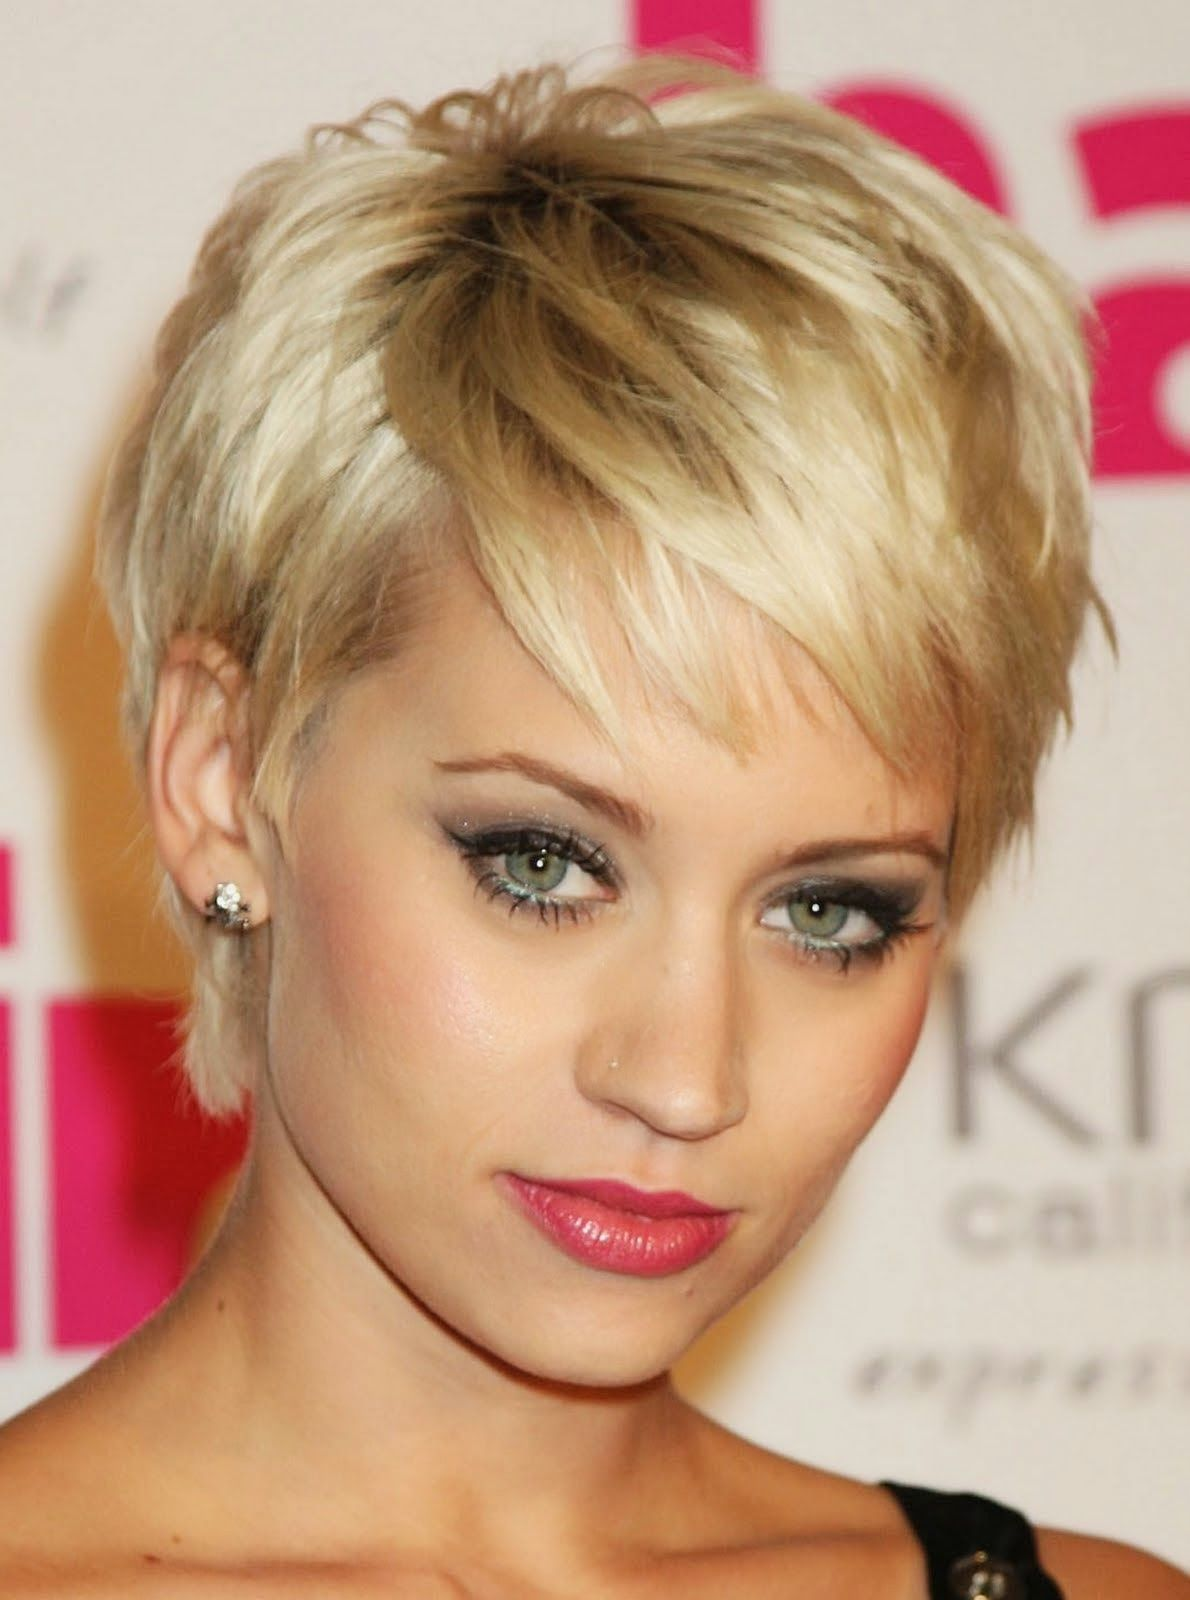 20 best short hairstyles for women | styles for curly hair, short